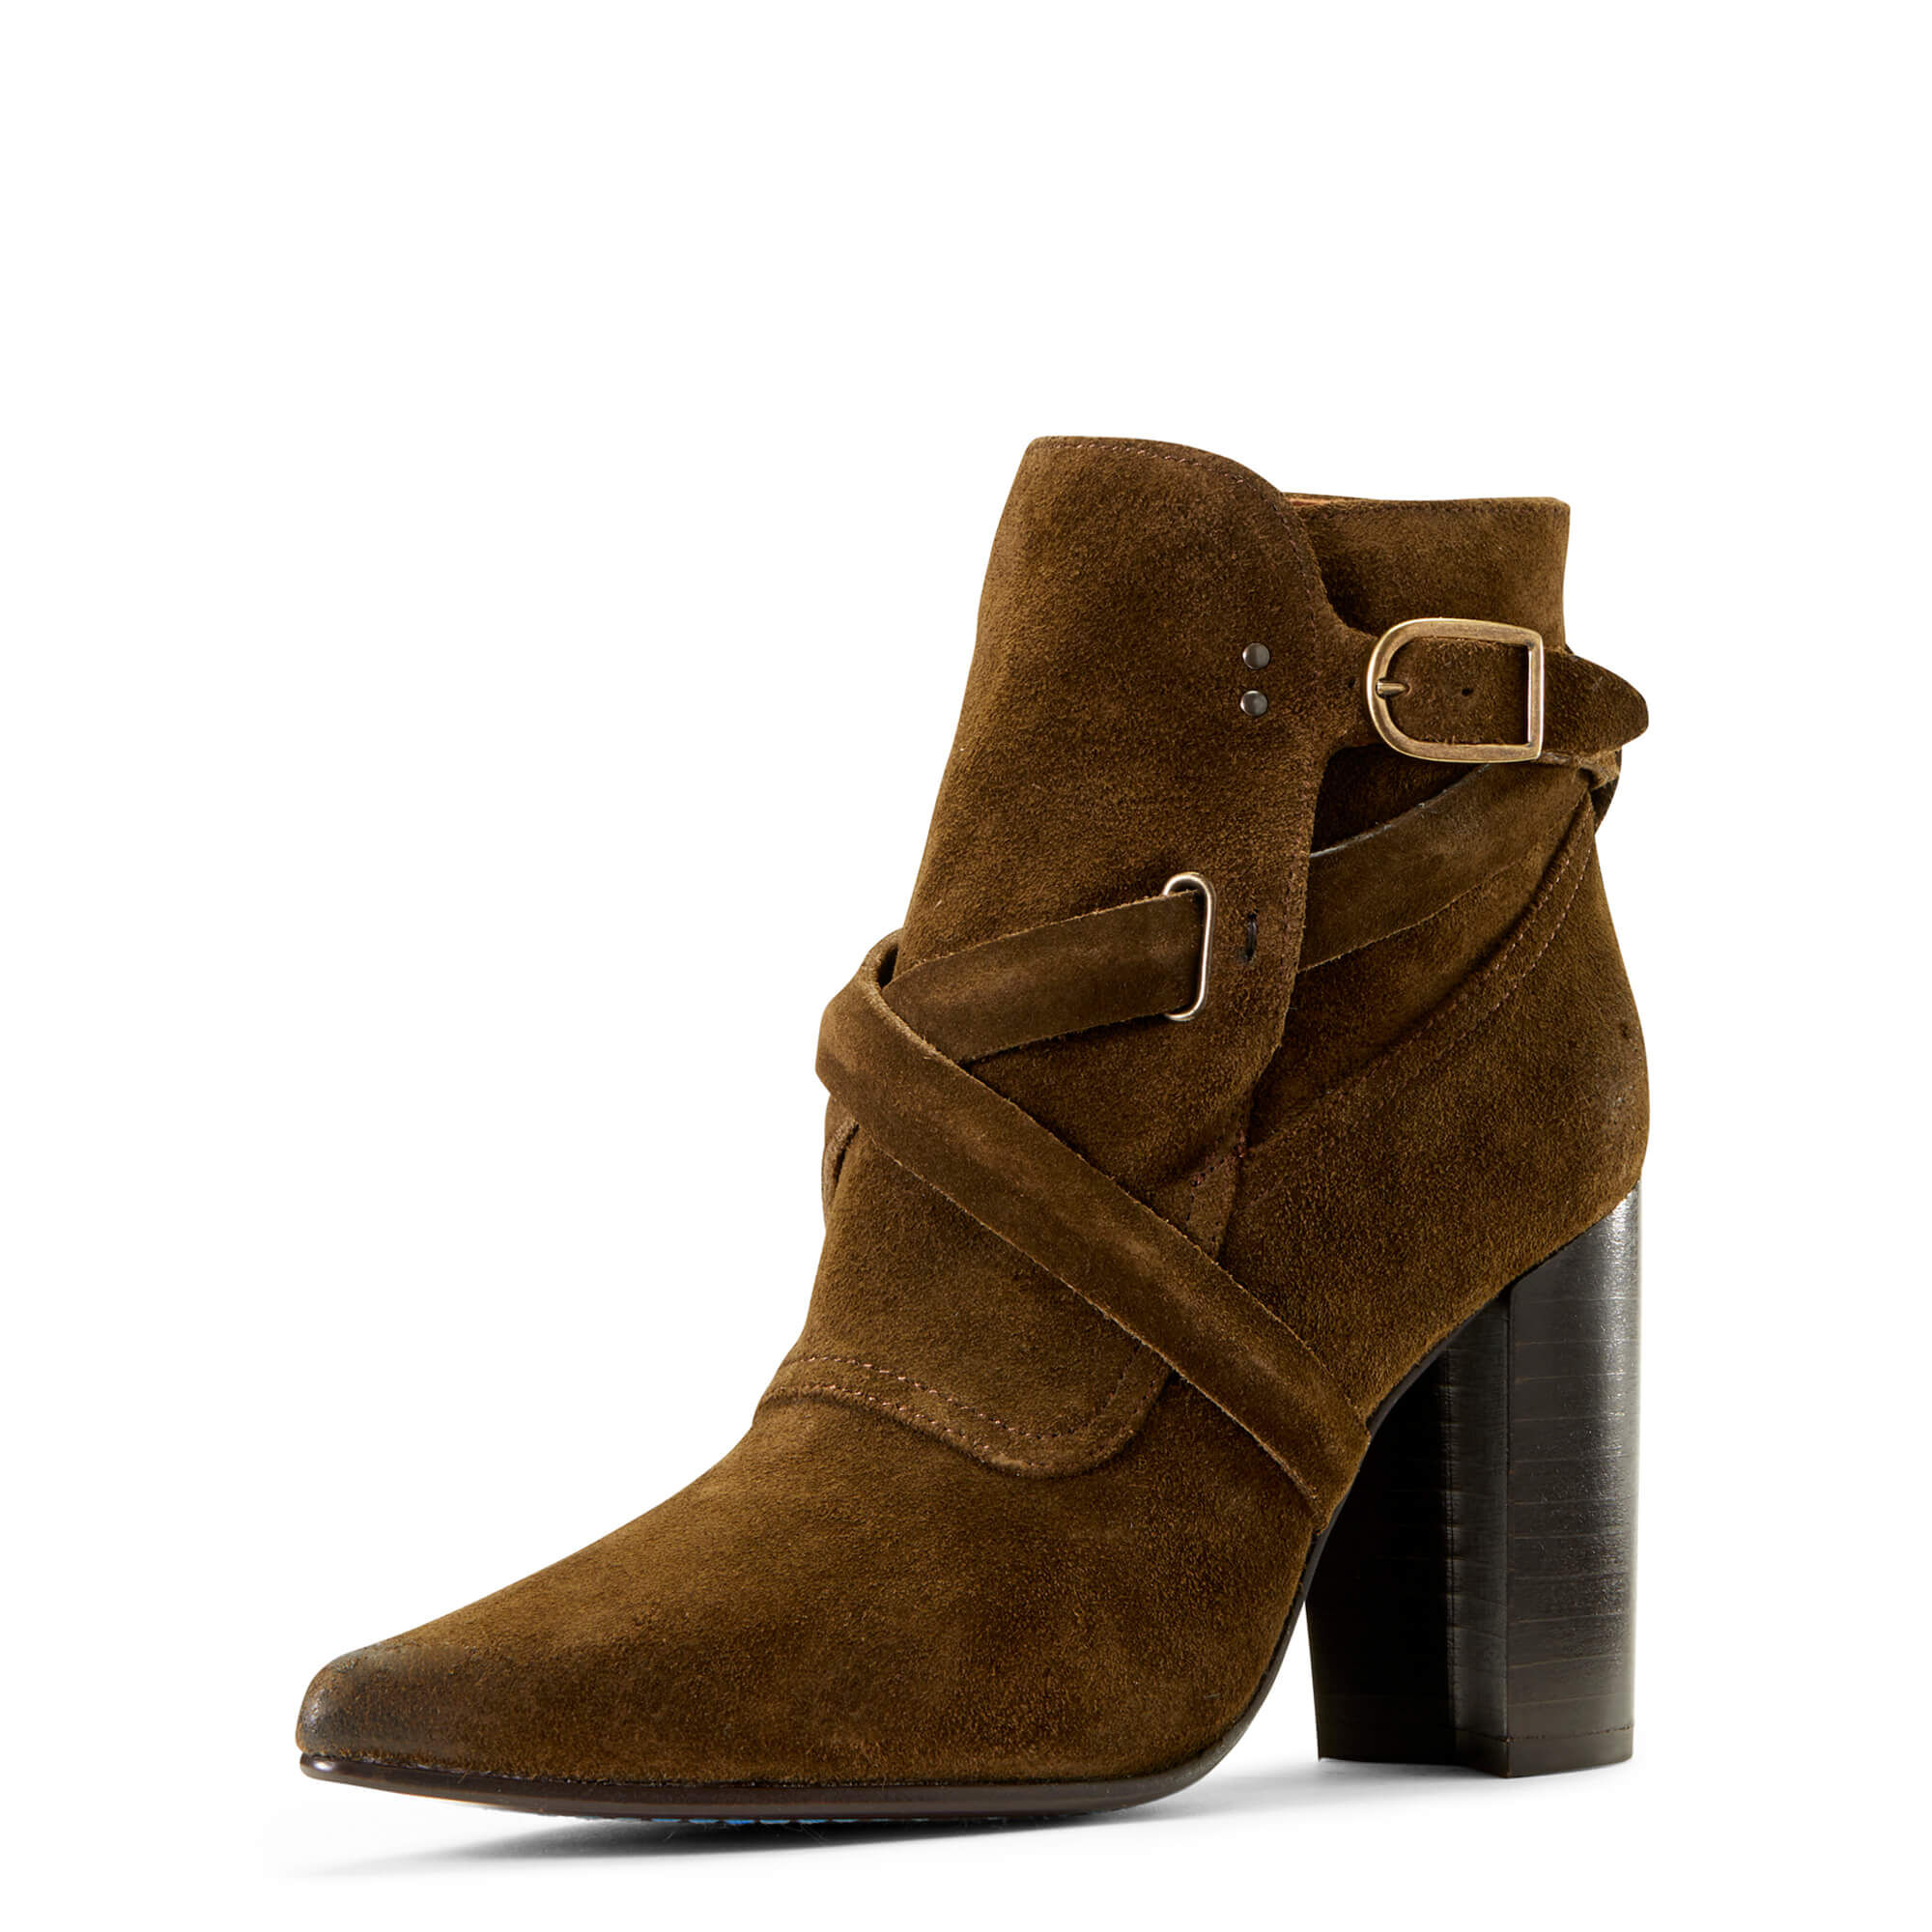 Women's Dimond Boots in Olive Suede Leather by Ariat Two24